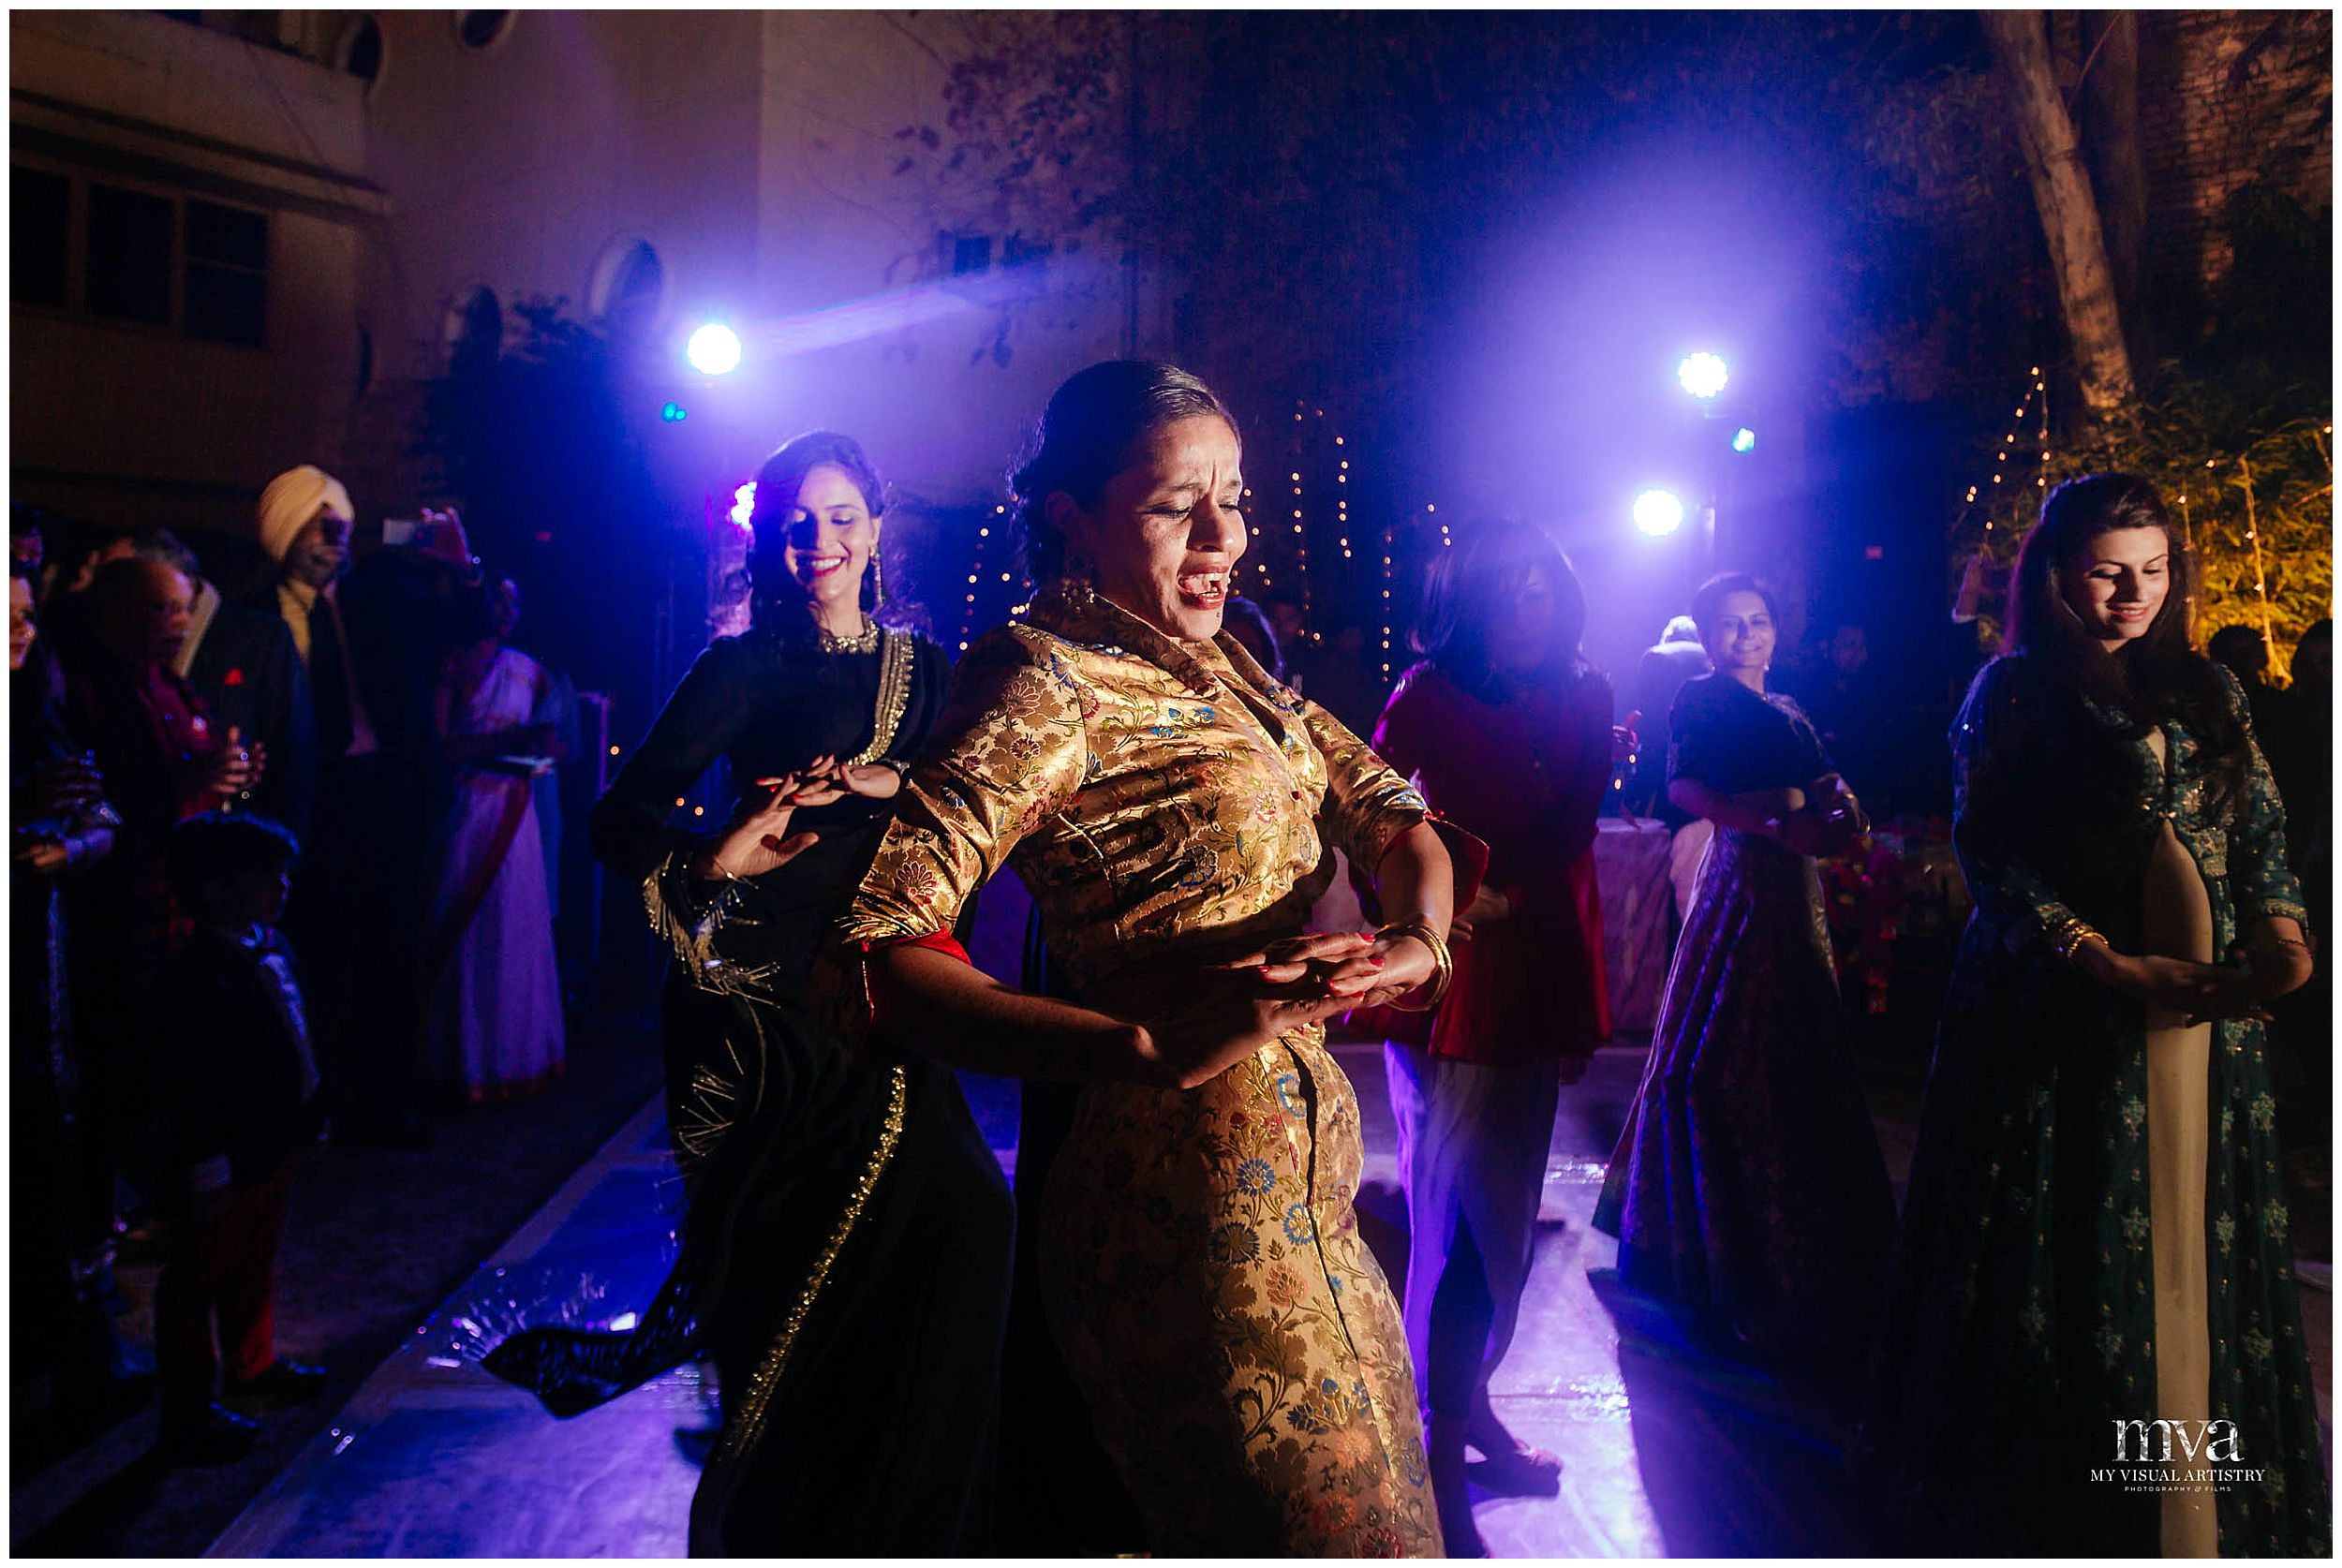 SAHIBA_KARTHIK_MYVISUALARTISTRY_WEDDING_PHOTOGRAPHY_MVA_KERALA_GURGAON_0012.jpg